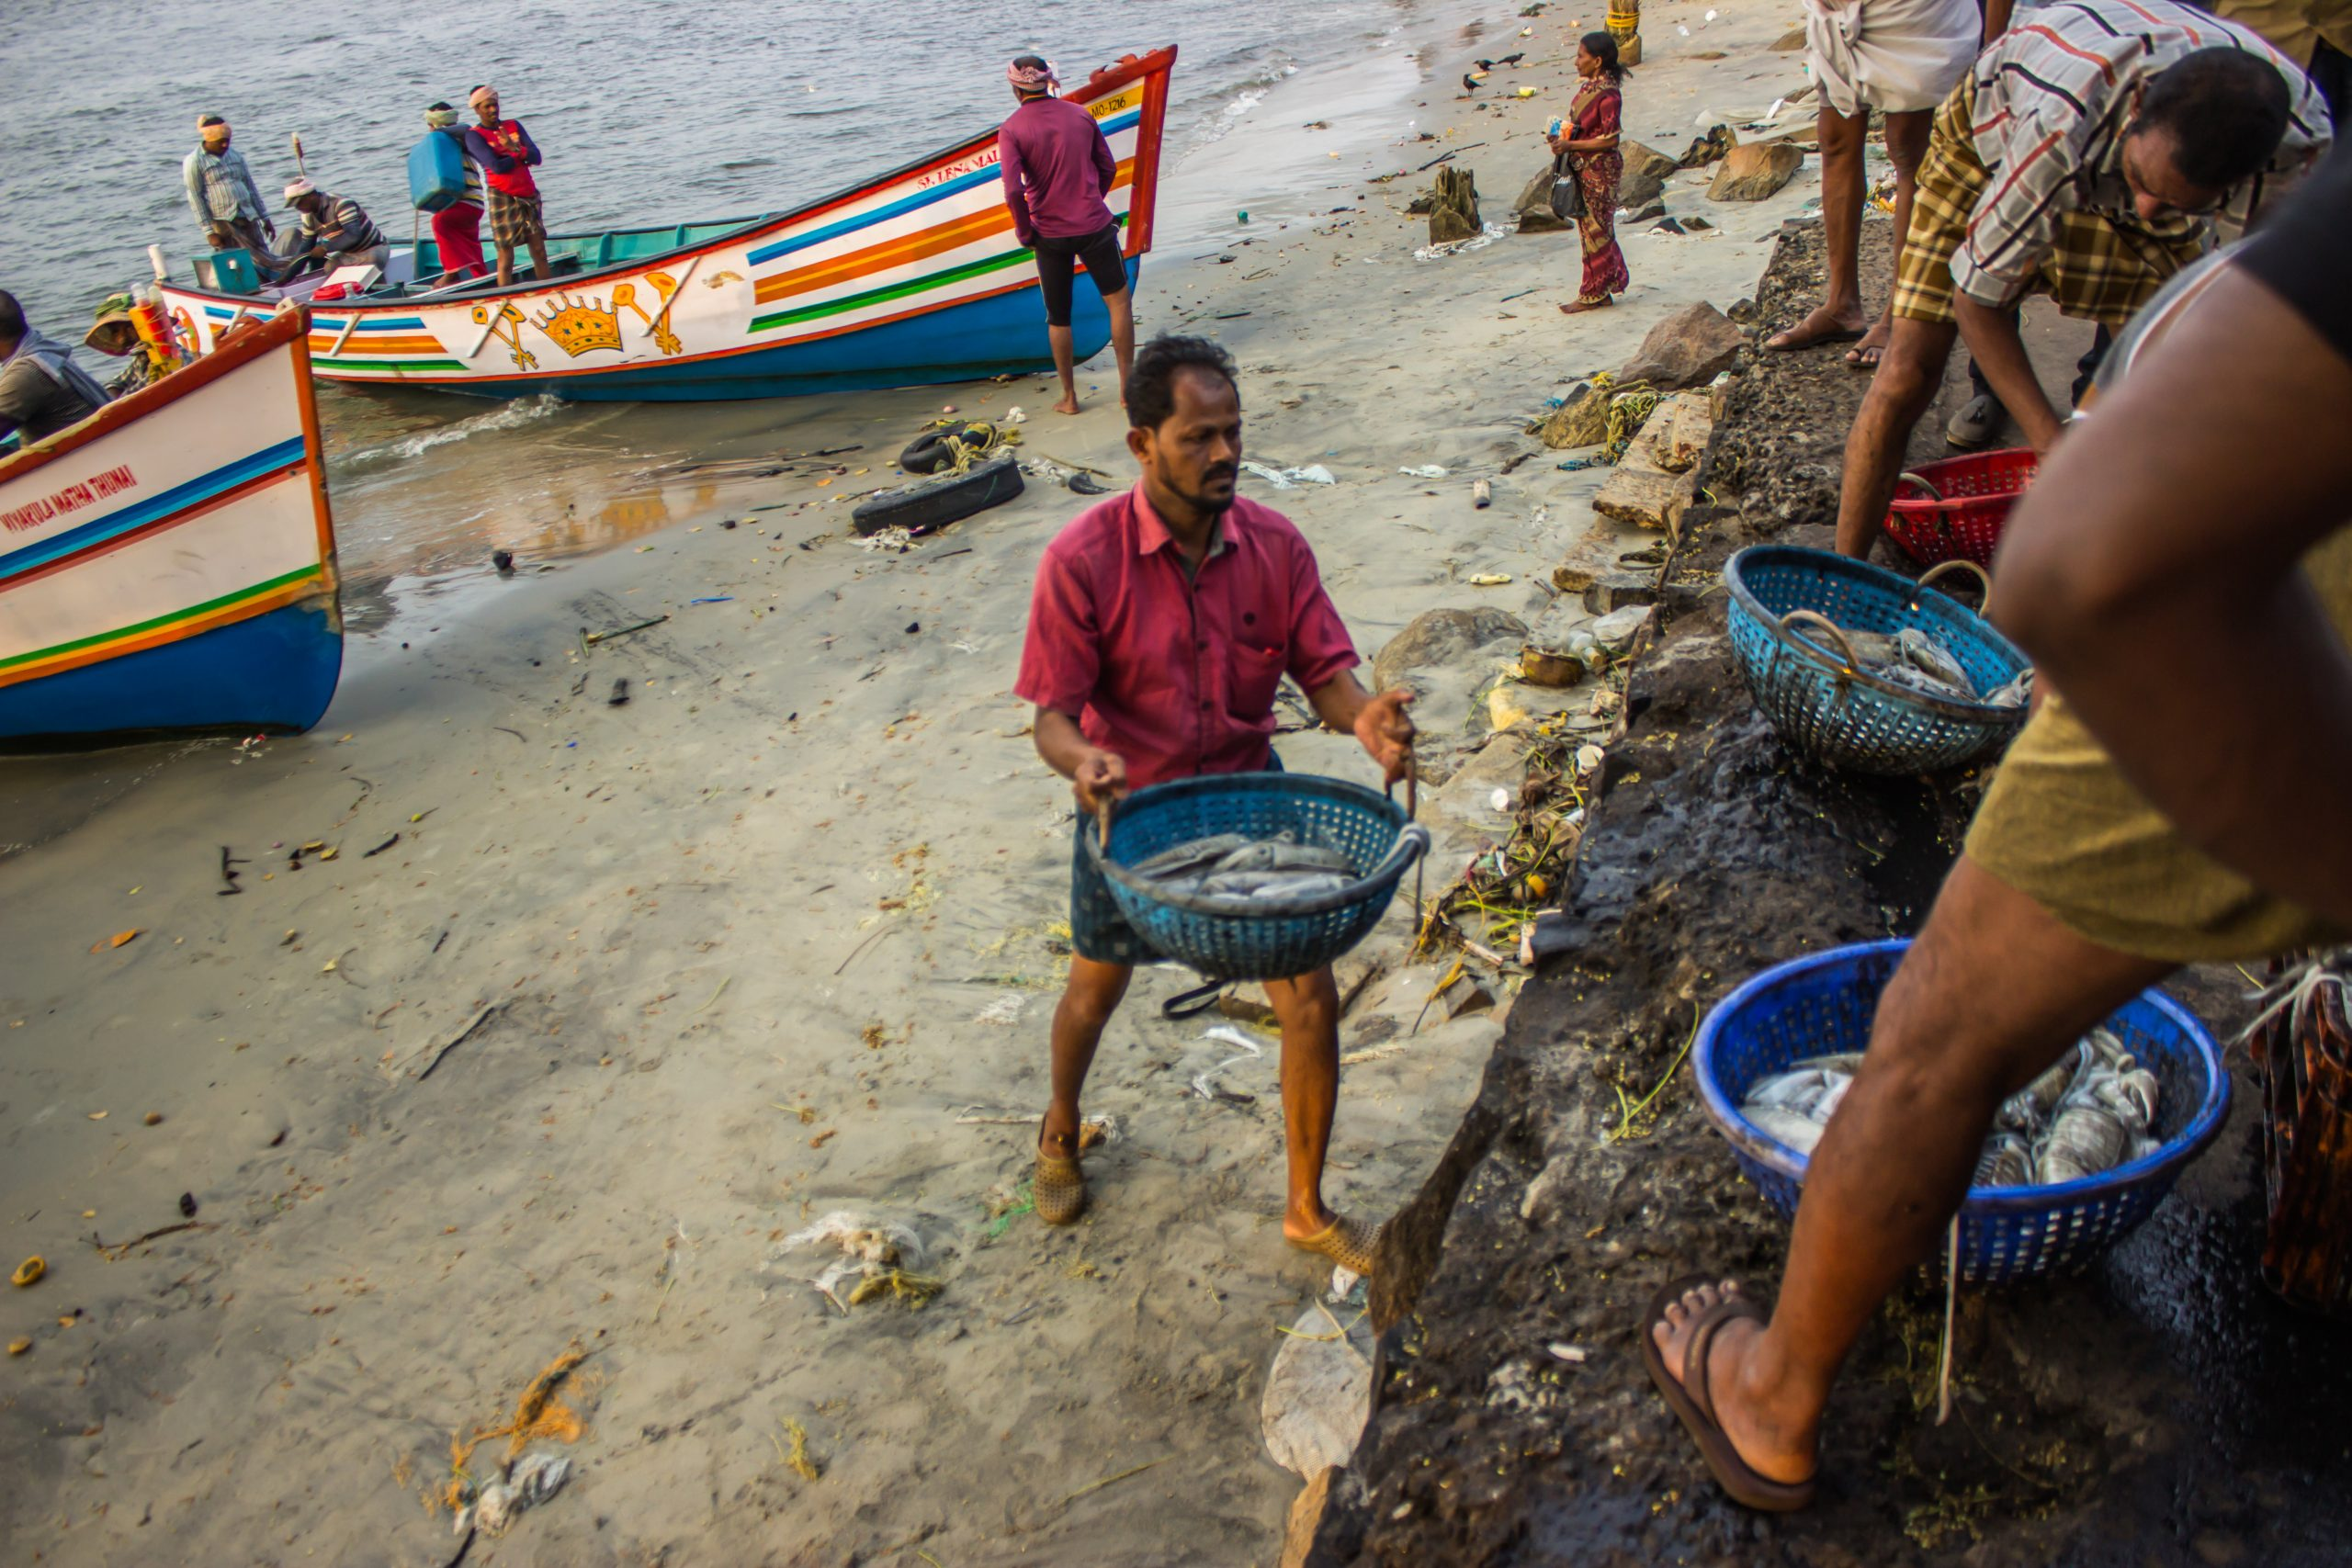 Fishermen collecting fish in baskets